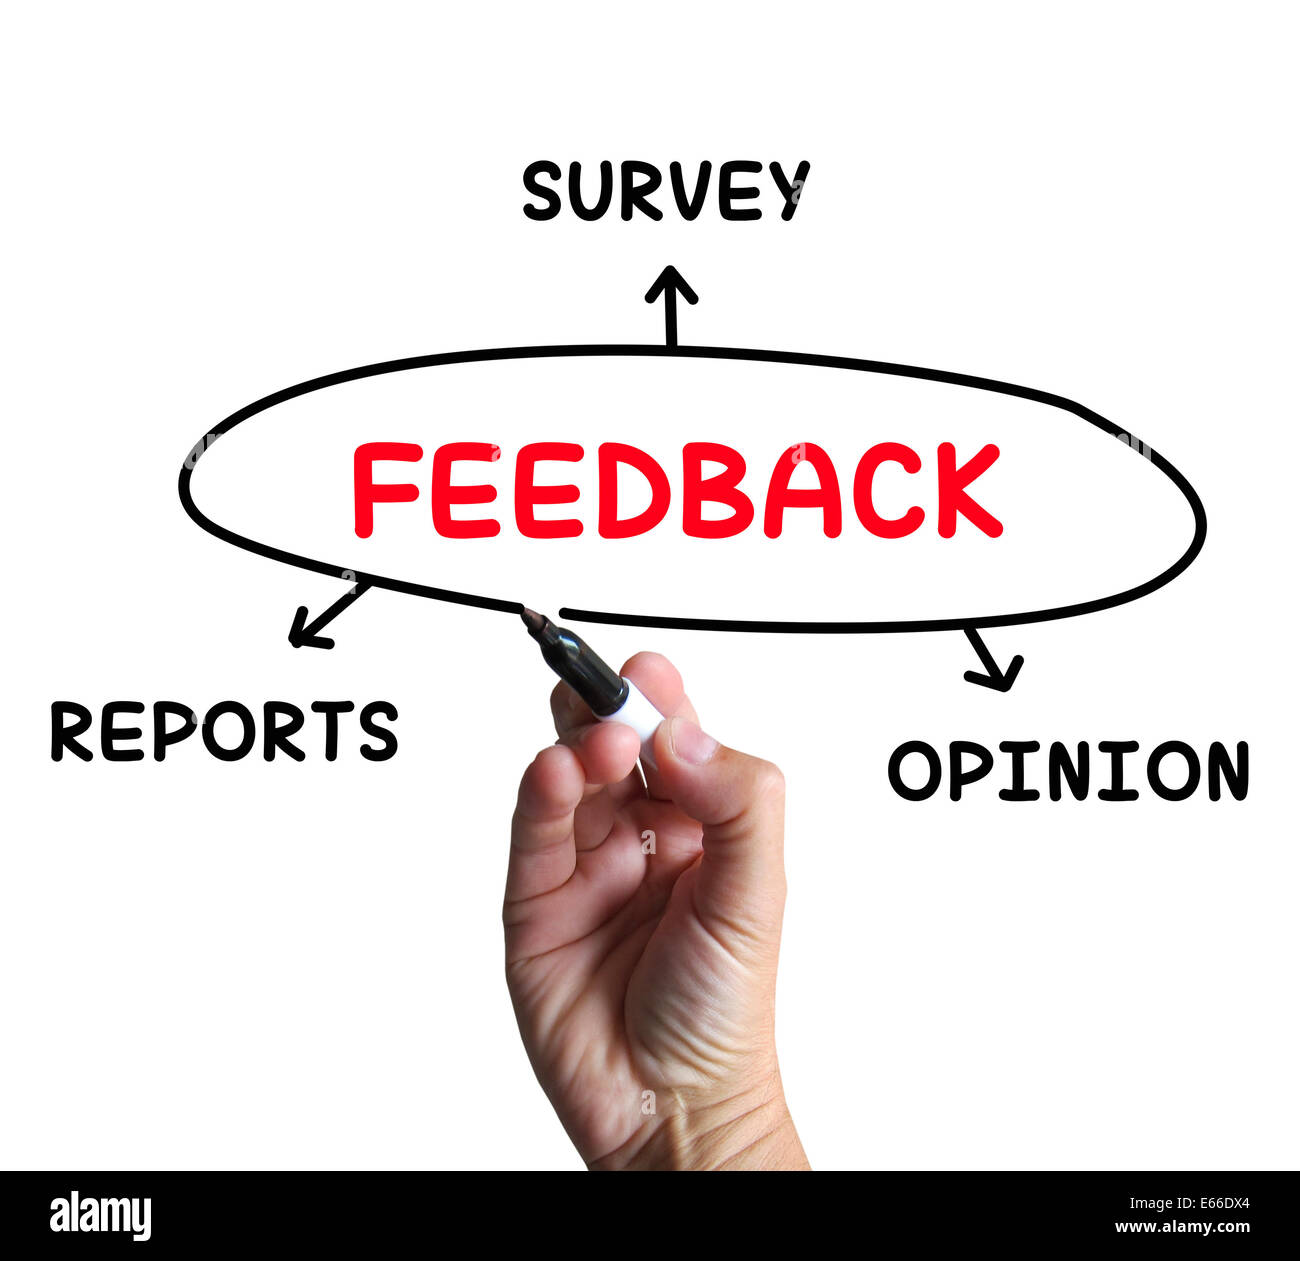 Feedback diagram meaning reports criticism and evaluation stock feedback diagram meaning reports criticism and evaluation ccuart Gallery